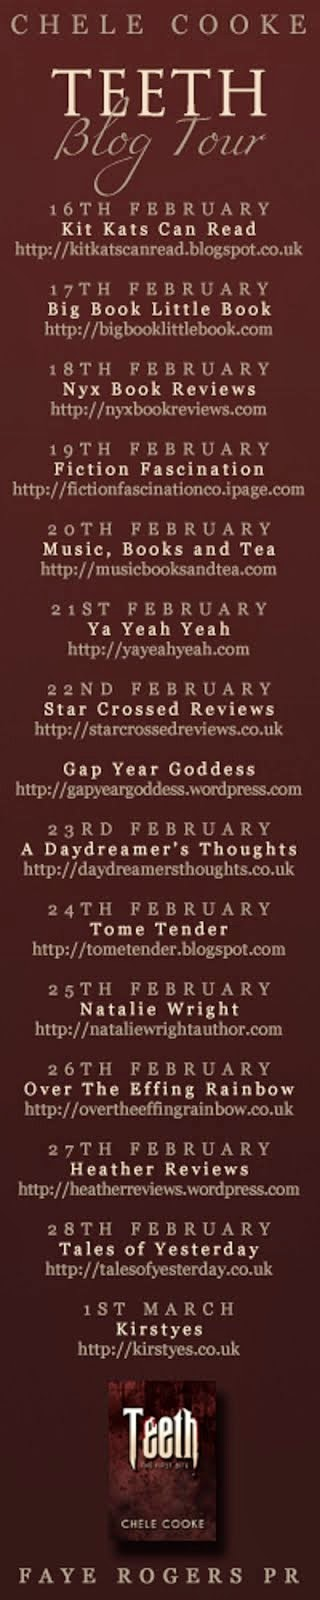 Teeth Blog Tour